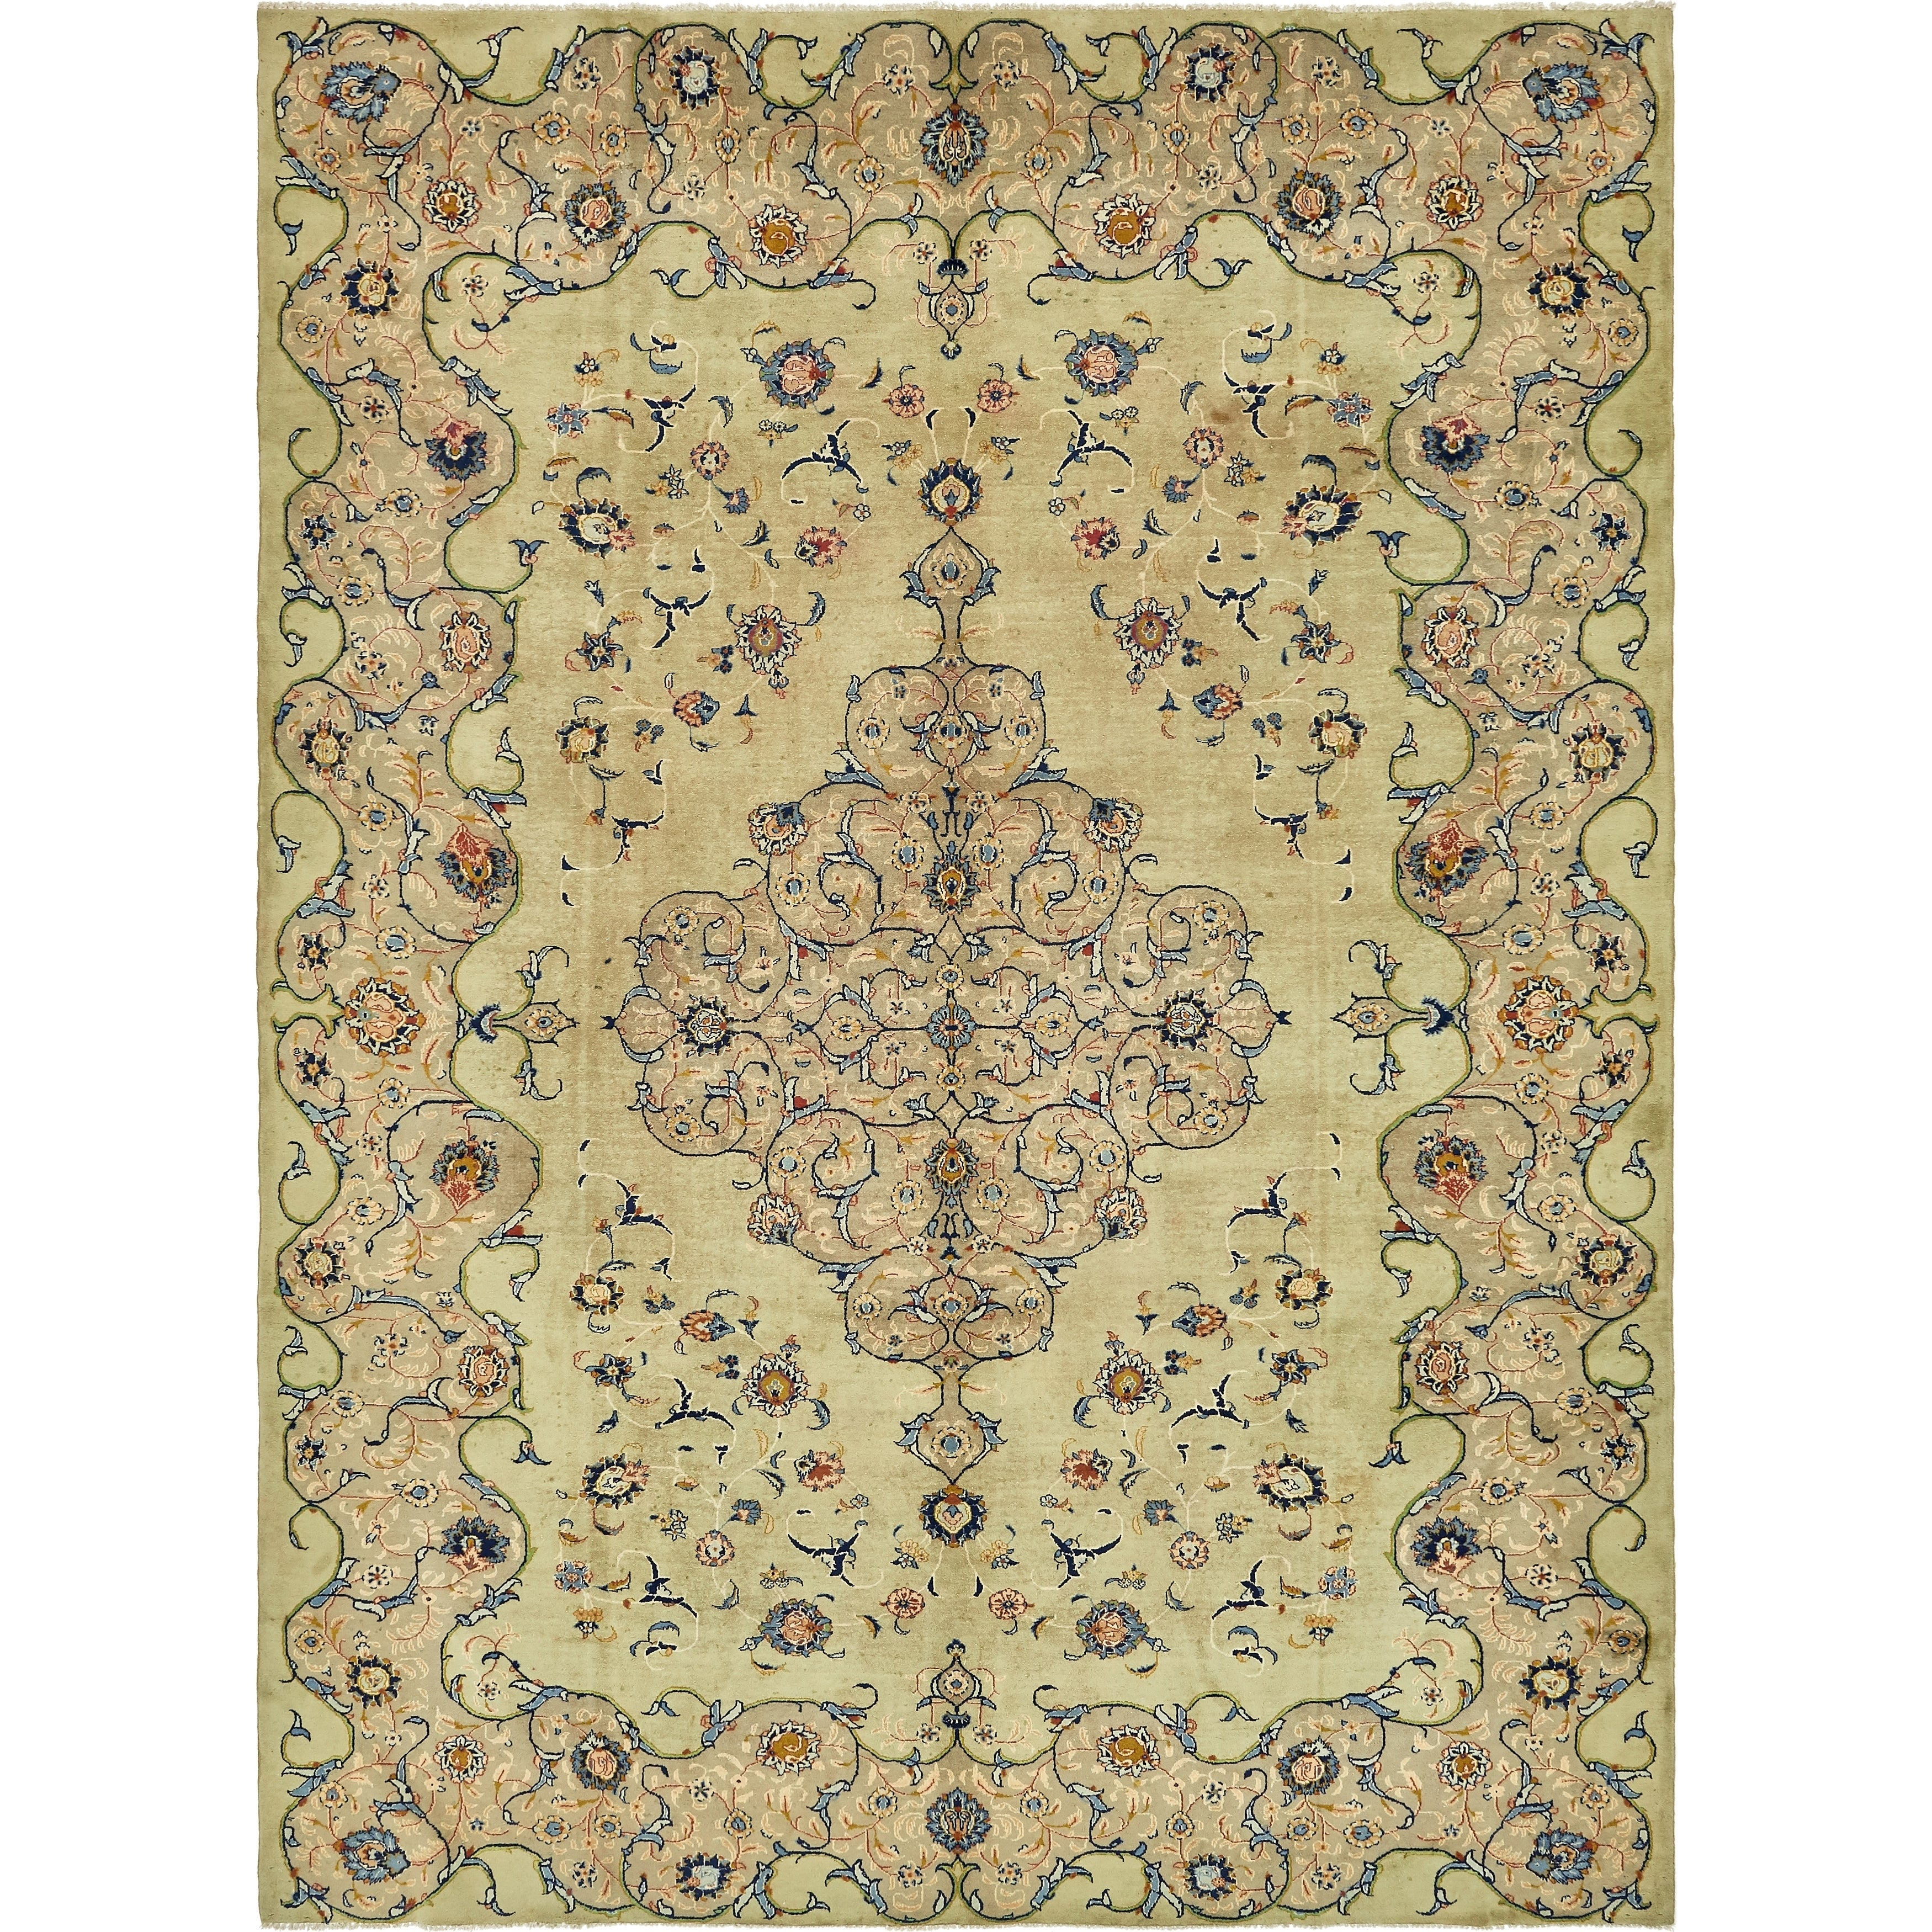 Hand Knotted Kashan Semi Antique Wool Area Rug - 10 x 13 7 (Green - 10 x 13 7)